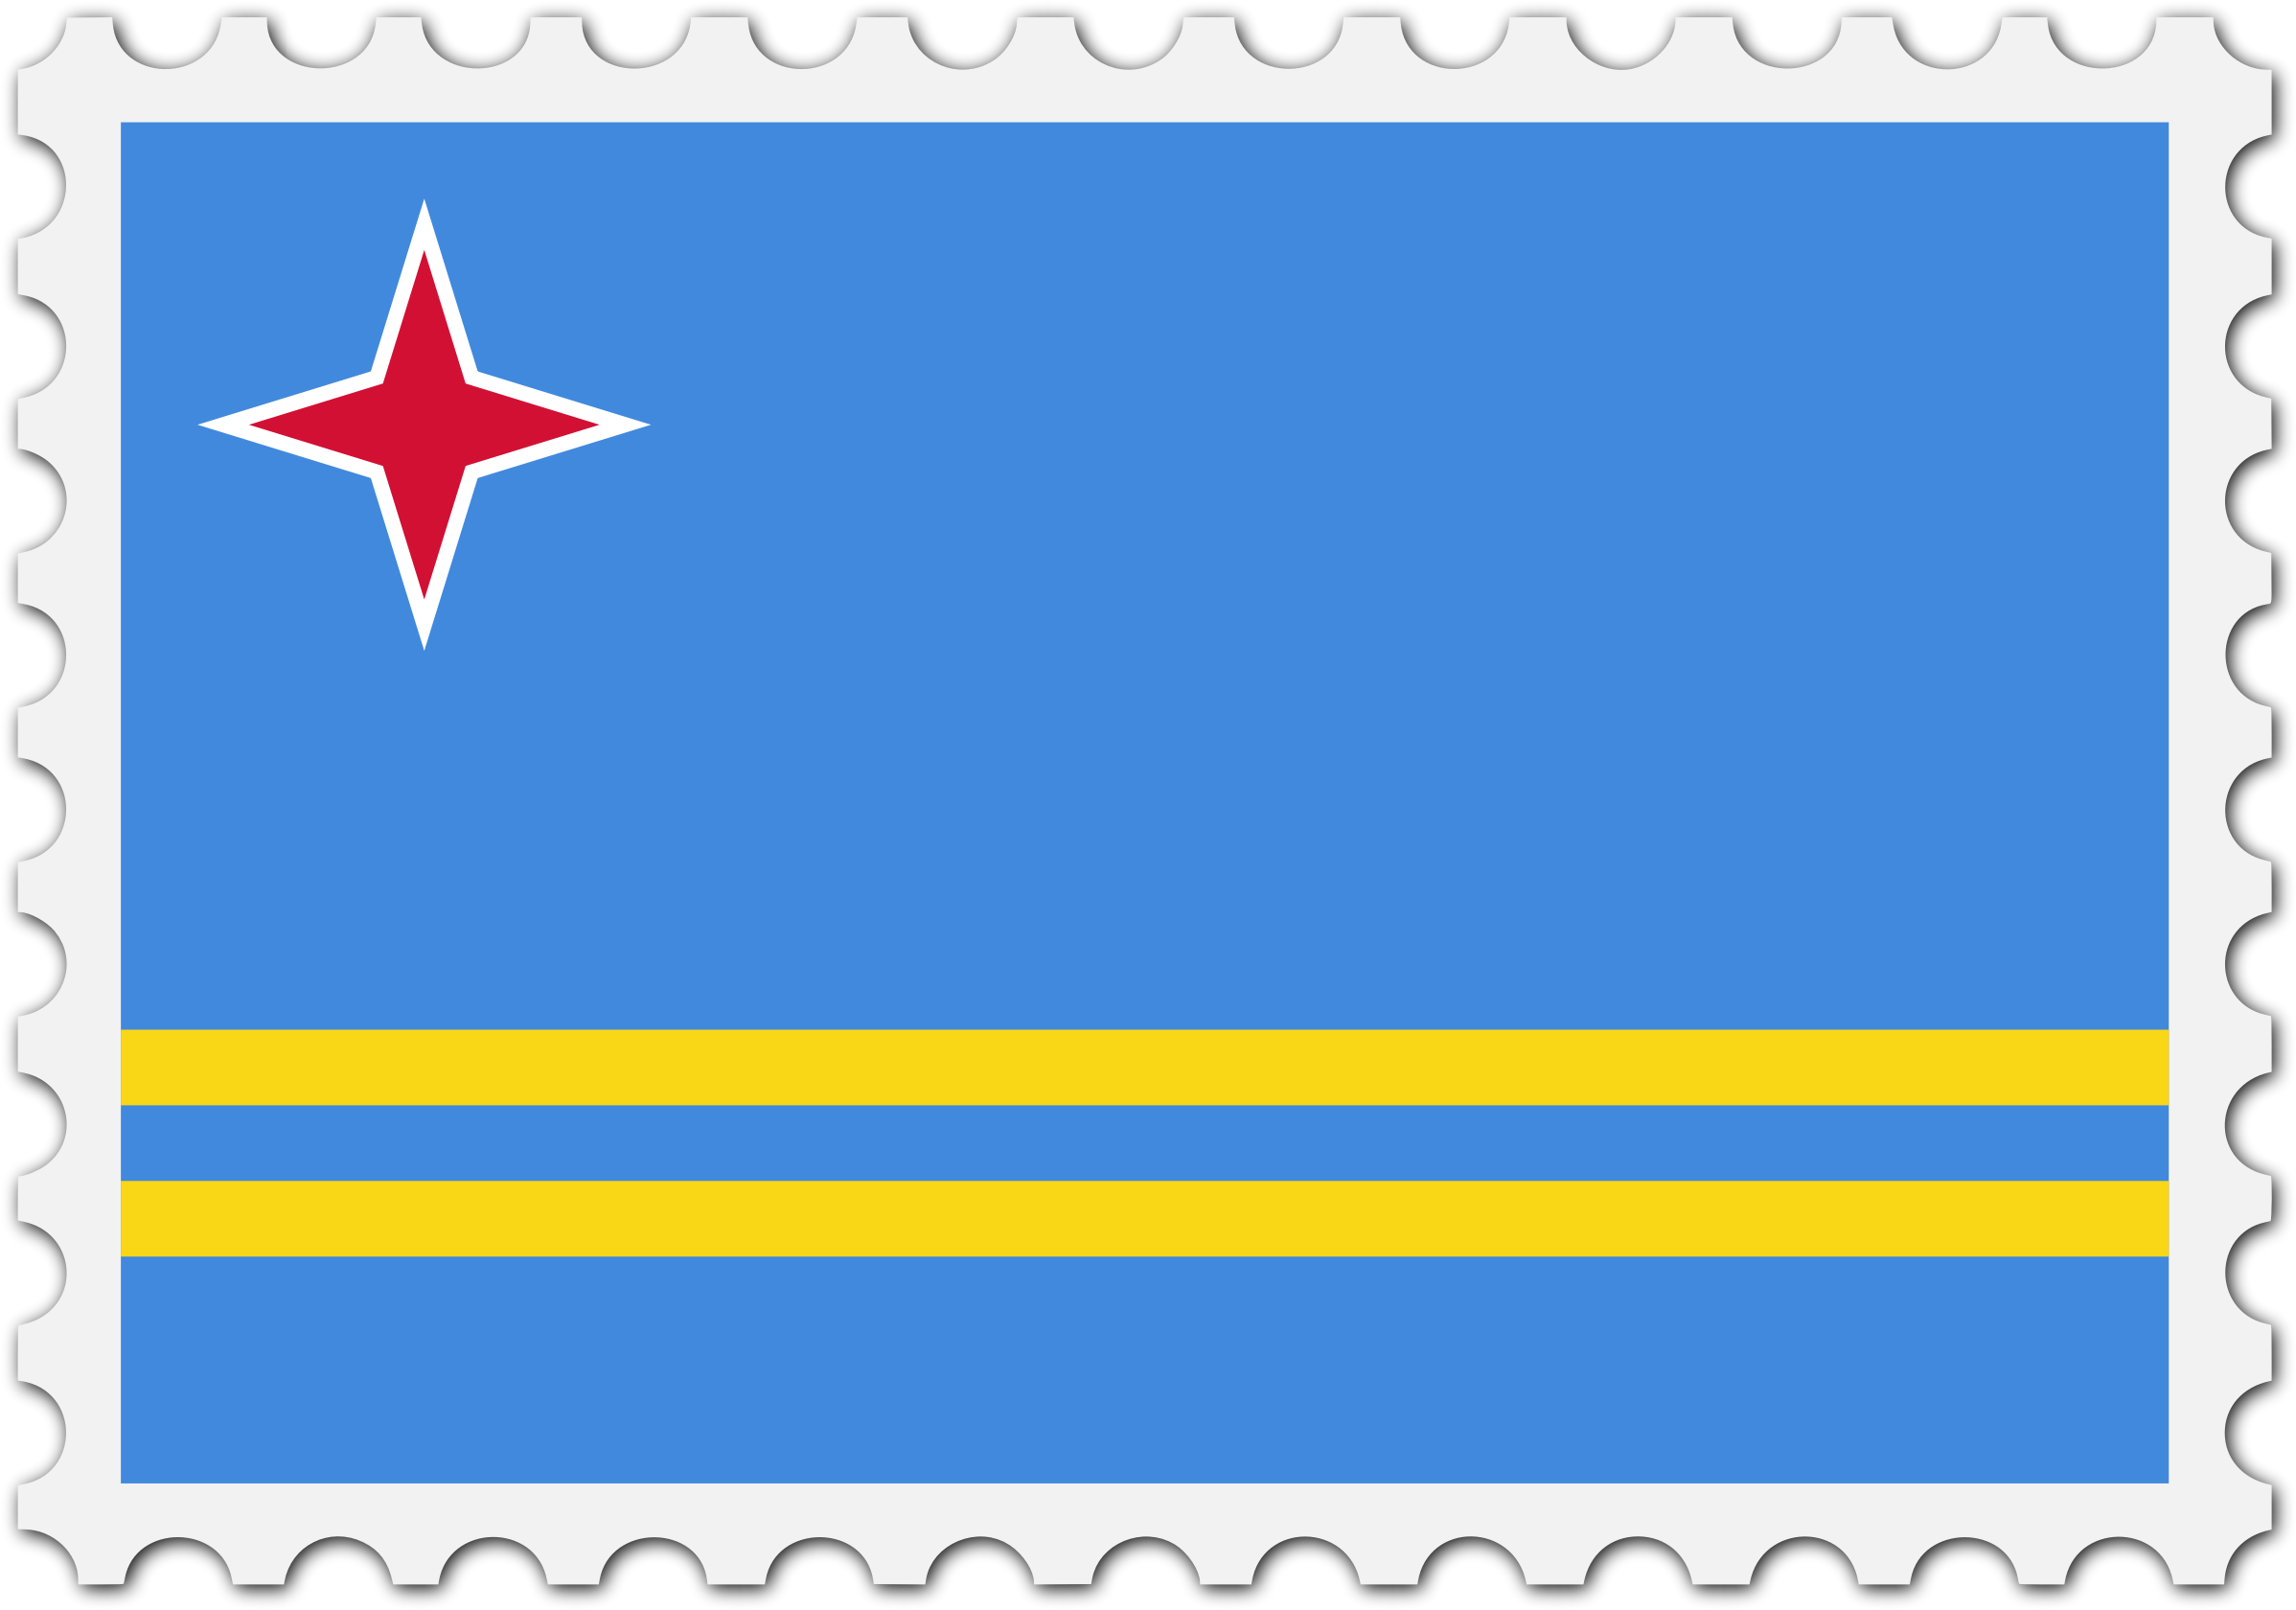 Aruba flag stamp by Firkin